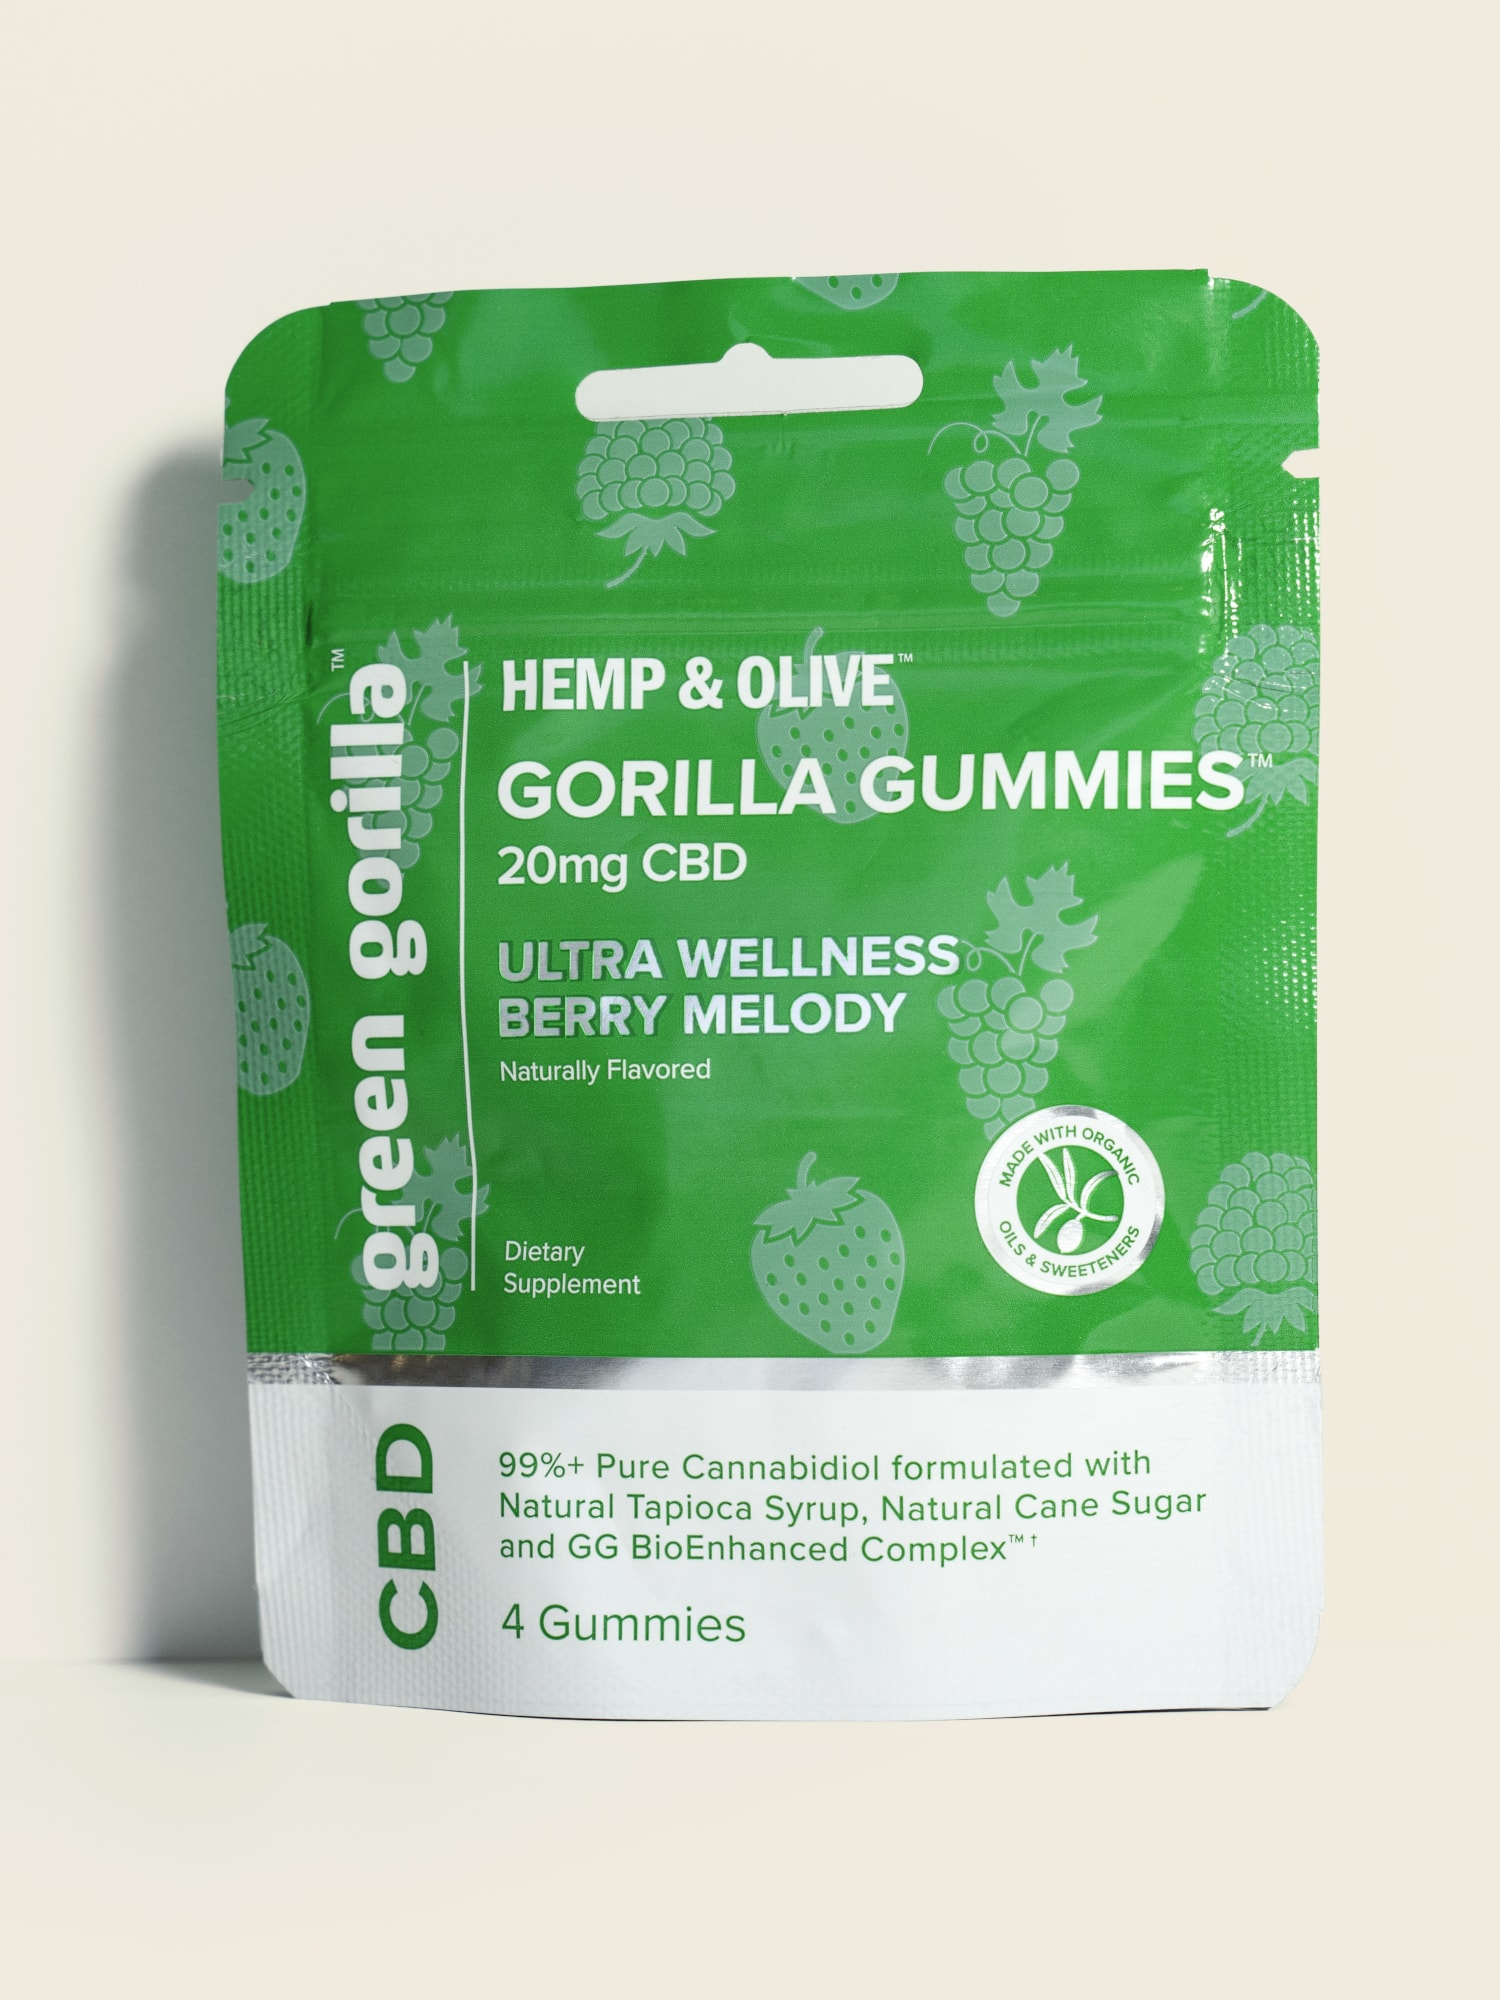 Pure CBD Infused Gorilla Gummies Organic CBD Chewables Travel Size - 20mg